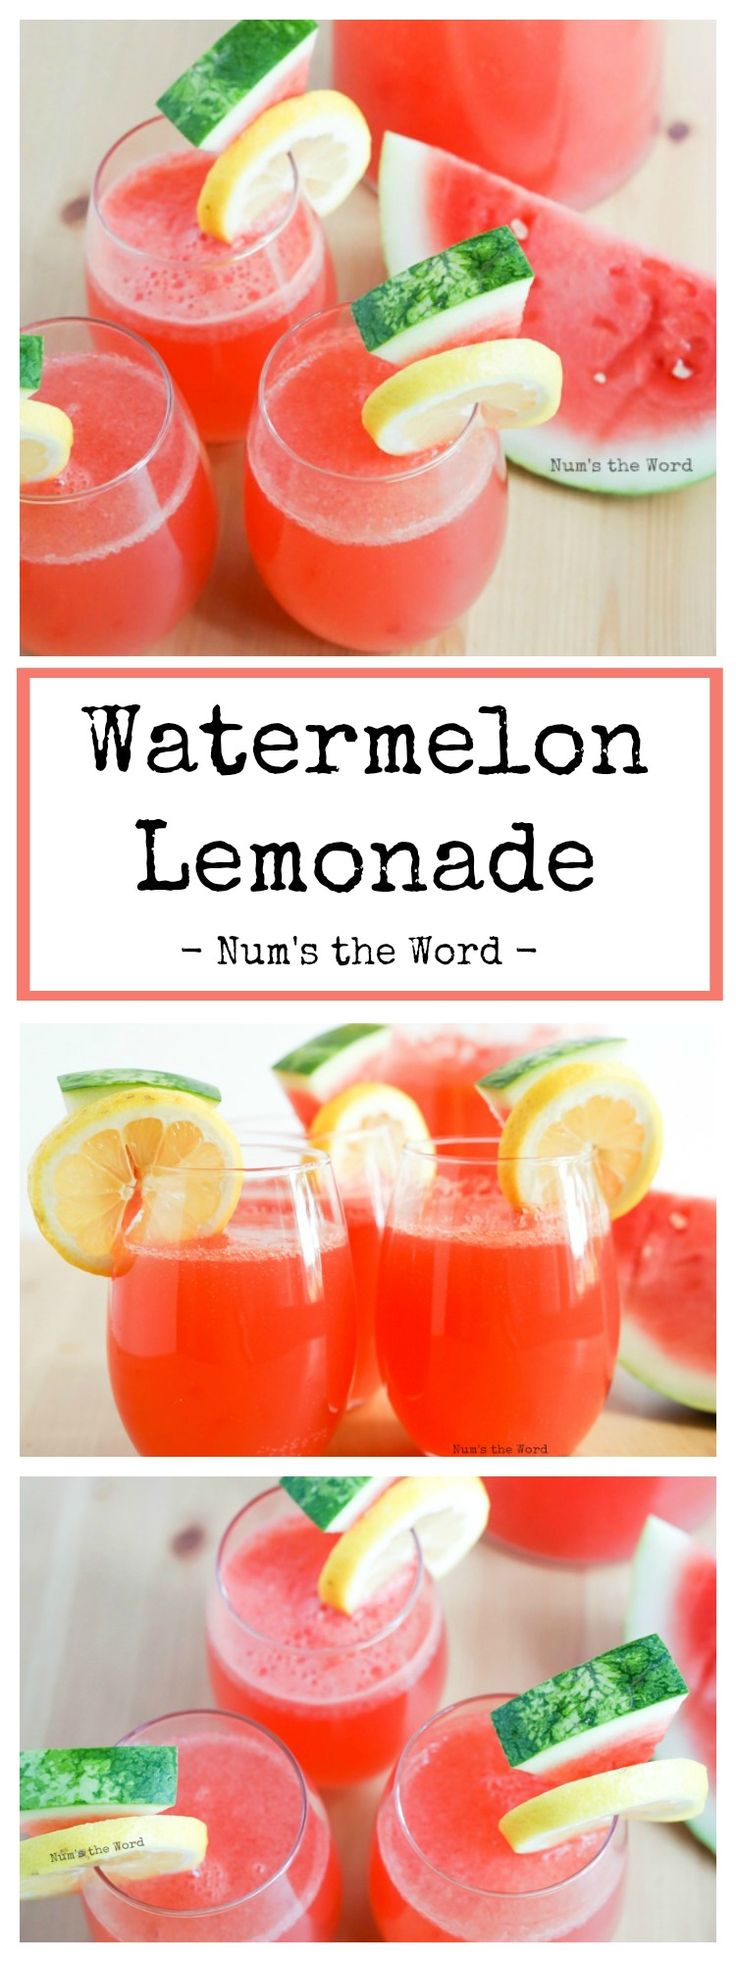 Sparkling Watermelon Lemonade – Looking for a way to use up all that watermelon? Need a quick and refreshing summer drink? Try this delicious and easy Watermelon Lemonade.